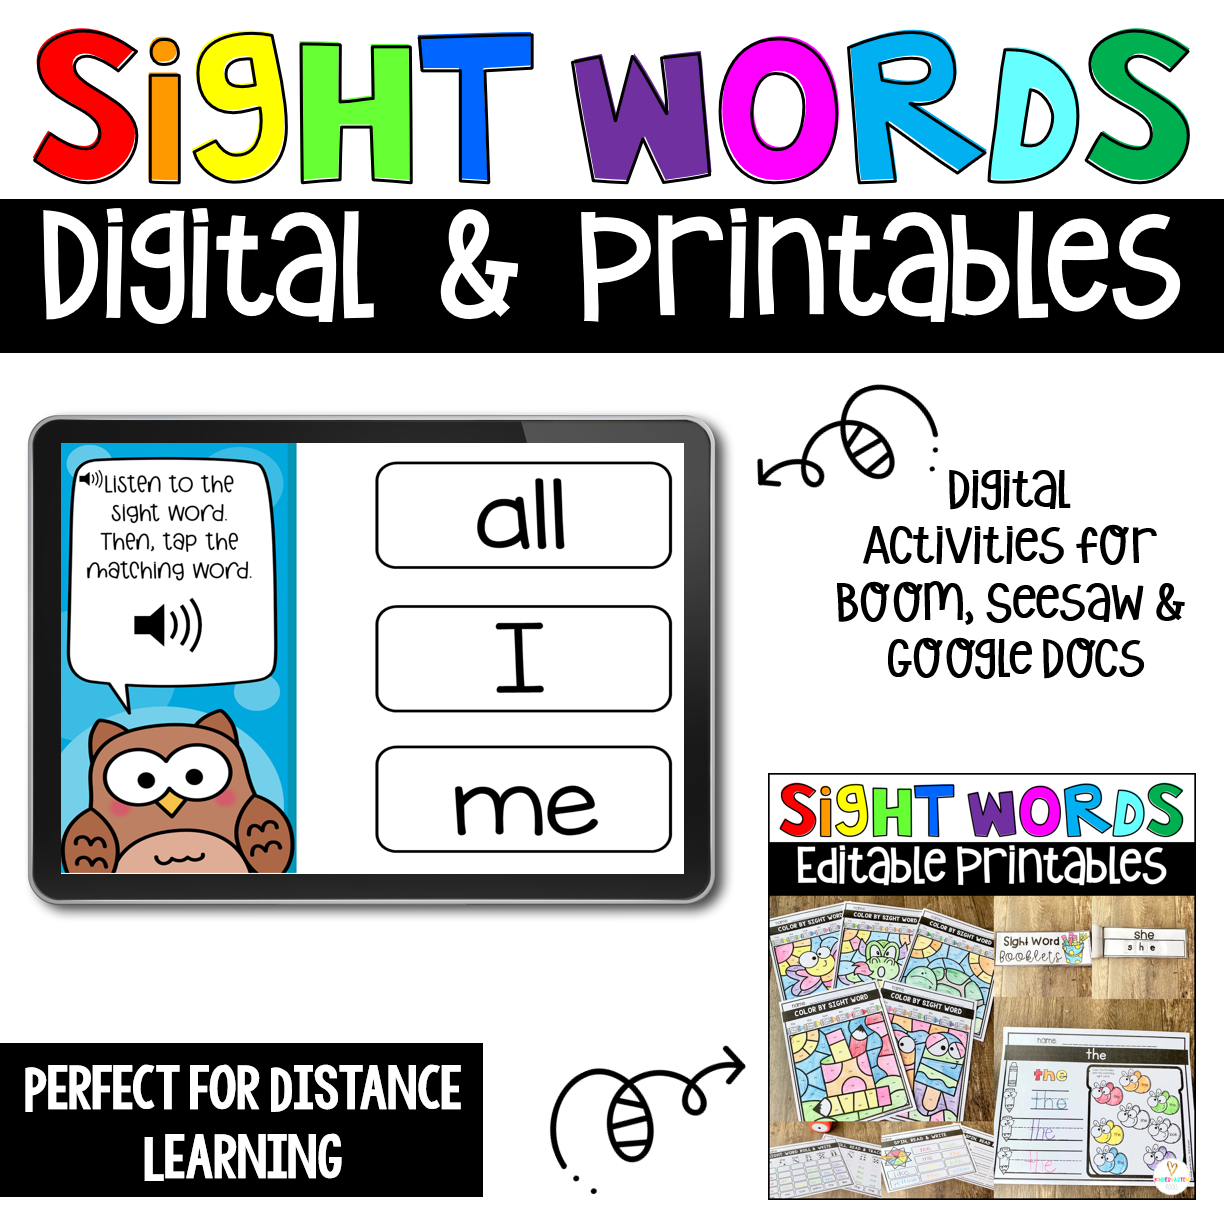 Editable Sight Word Printables and Digital Activities